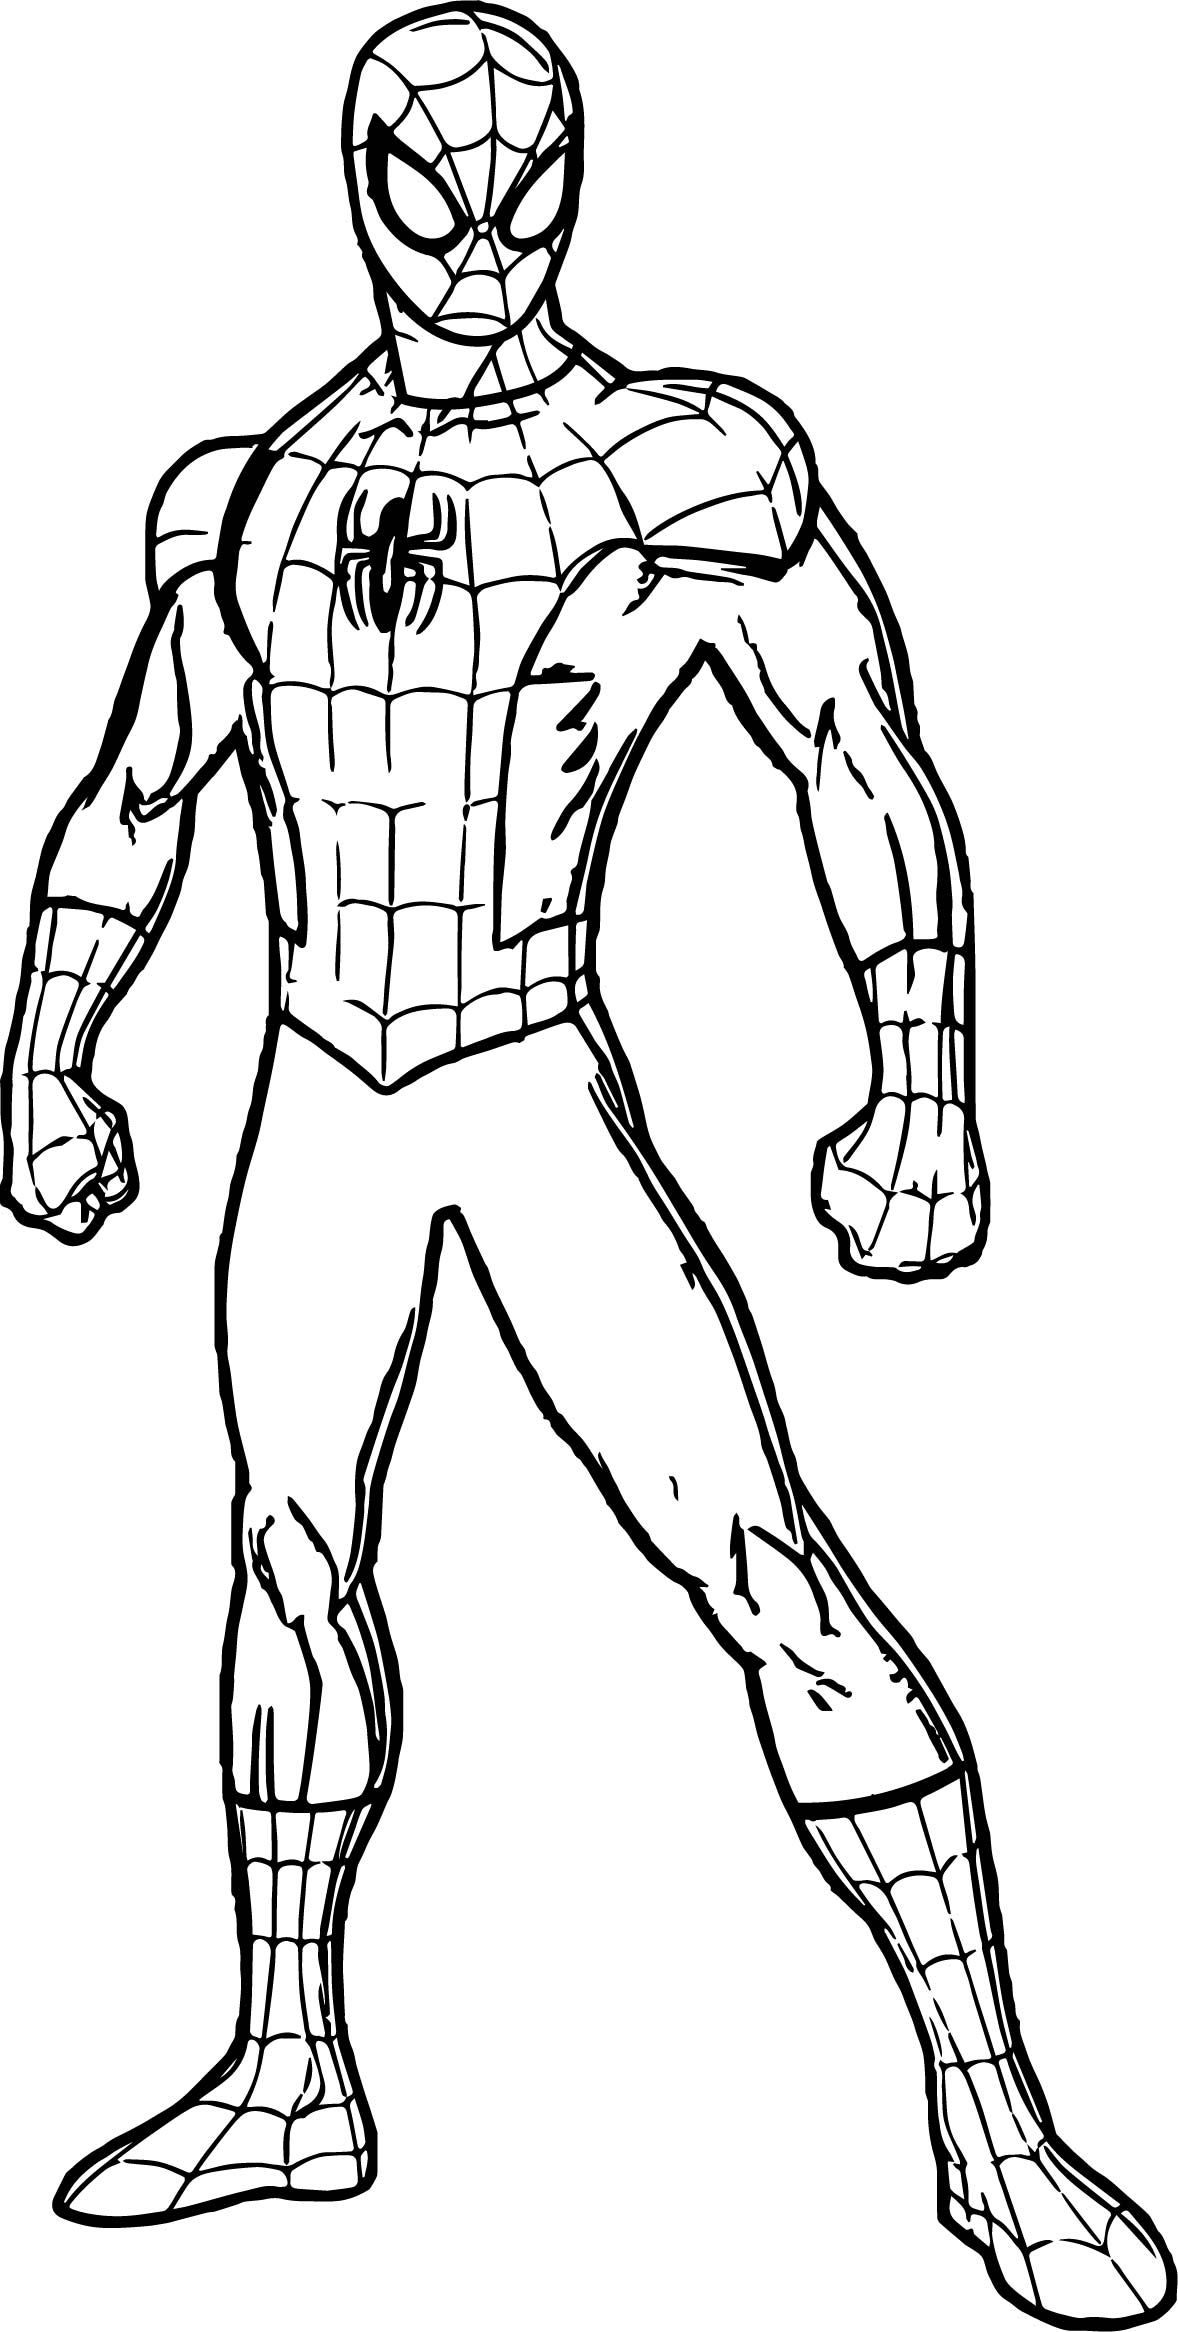 lego iron man coloring pages - spidey spider man coloring page